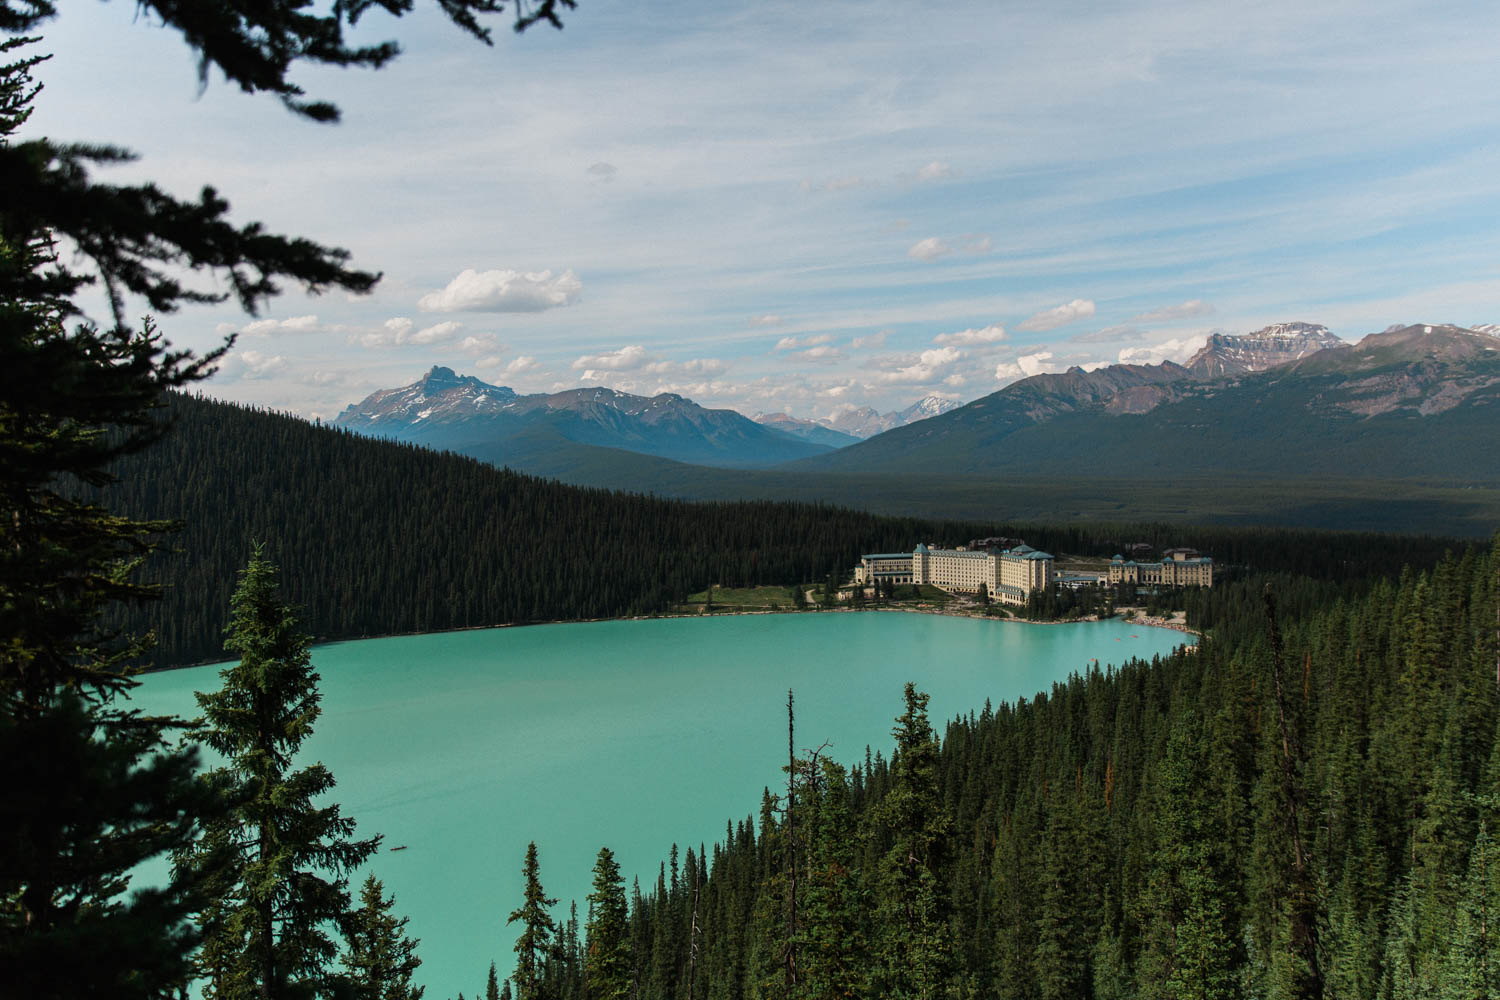 Easy Hike, Hiking with kids at Lake Louise Jennie Guenard Photography Lake Louise Photographer Fairview Lookout Fairmont Chateau Lake Louise